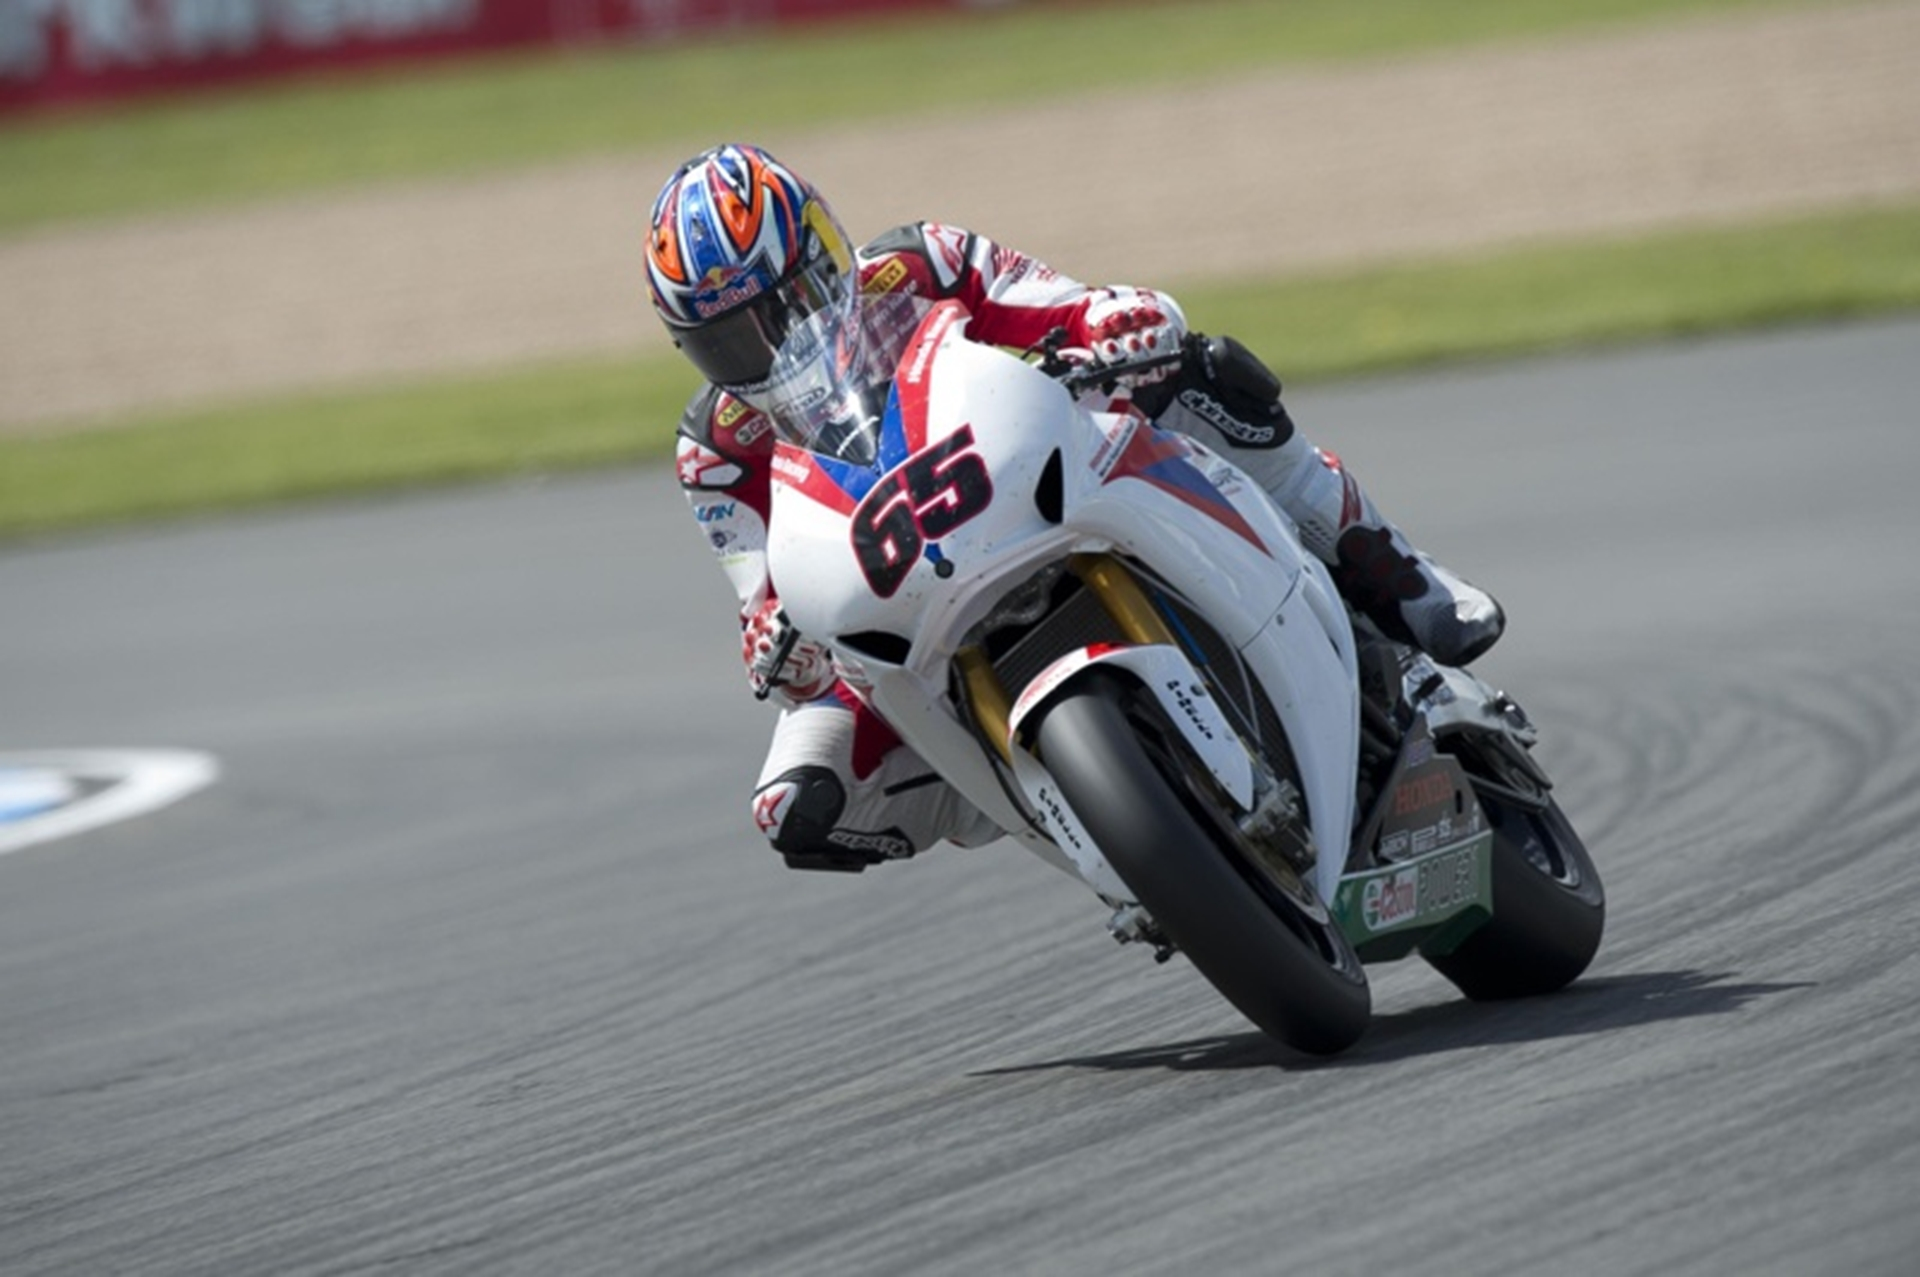 Jonathan Rea at Donington